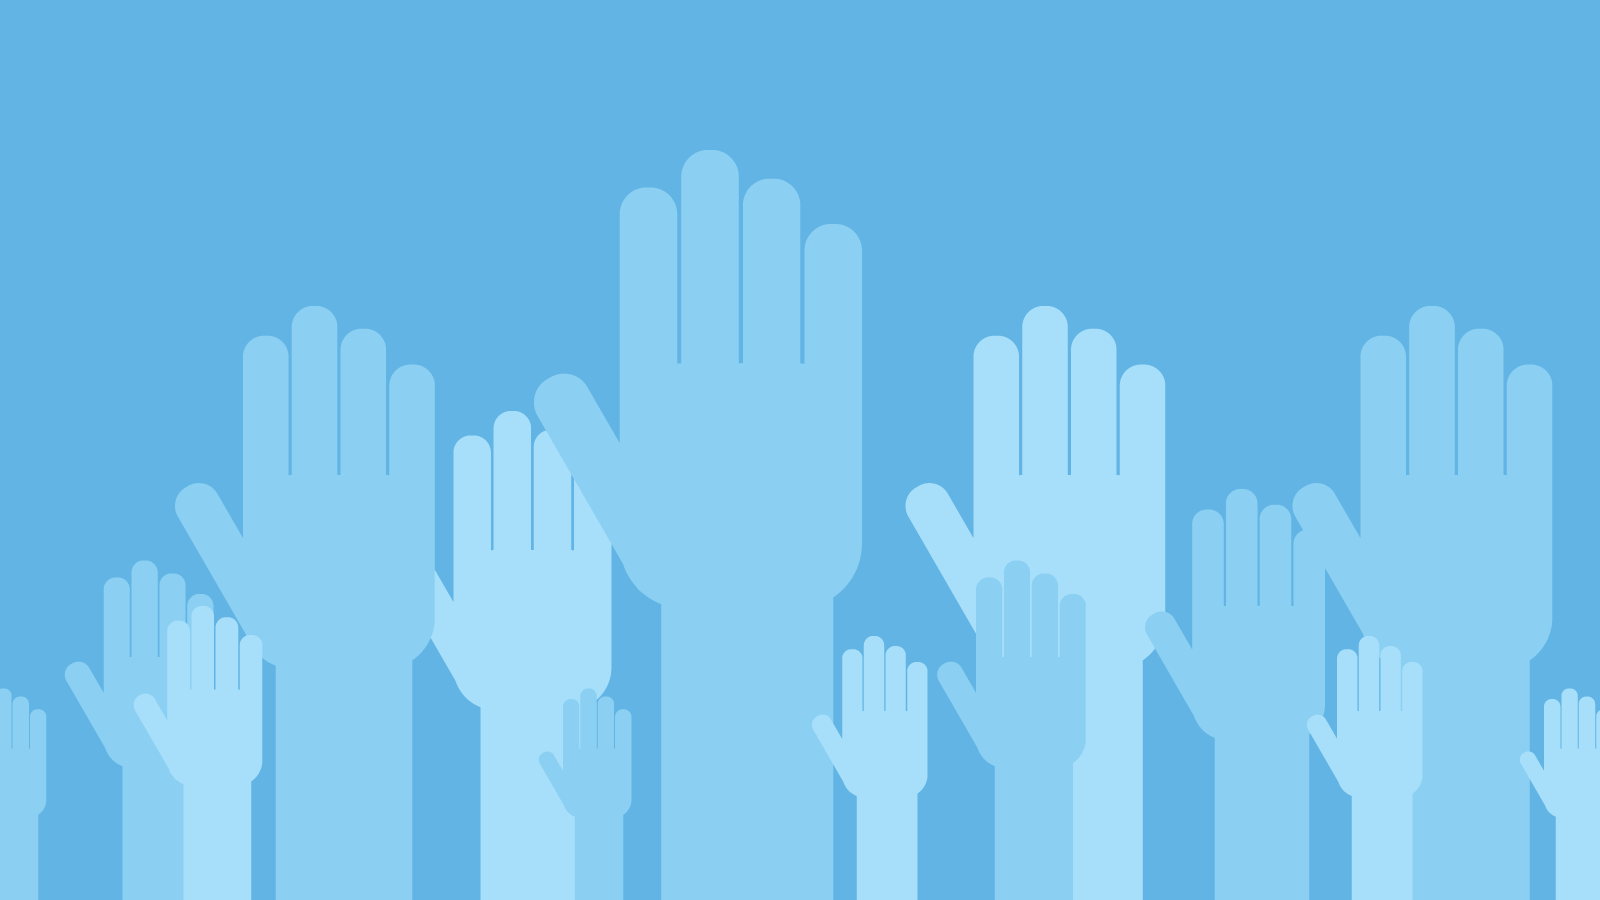 Raised hands on a blue background